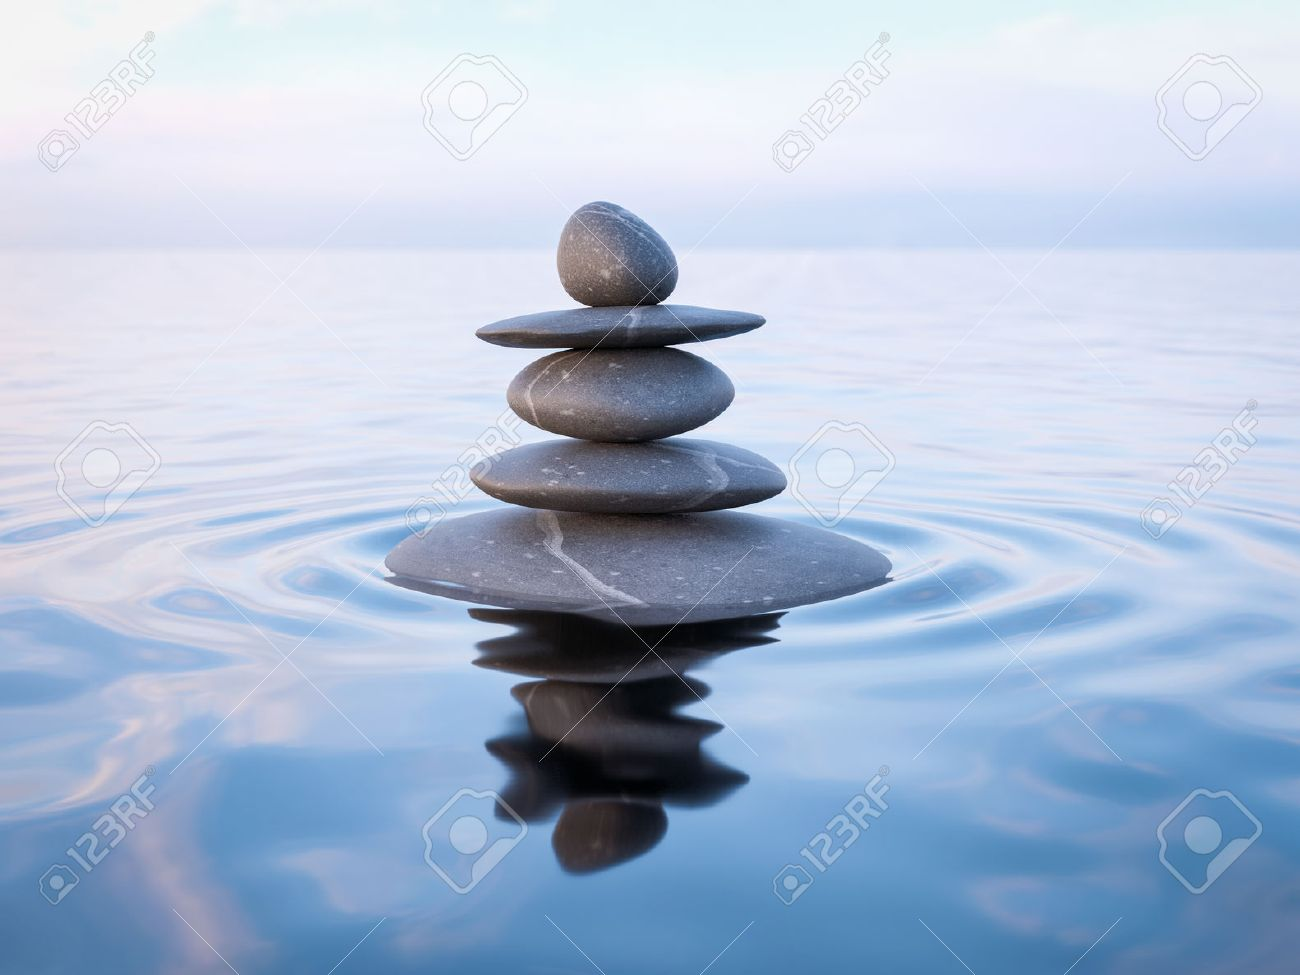 3d rendering of Zen stones in water with reflection - peace balance meditation relaxation concept - 61506857